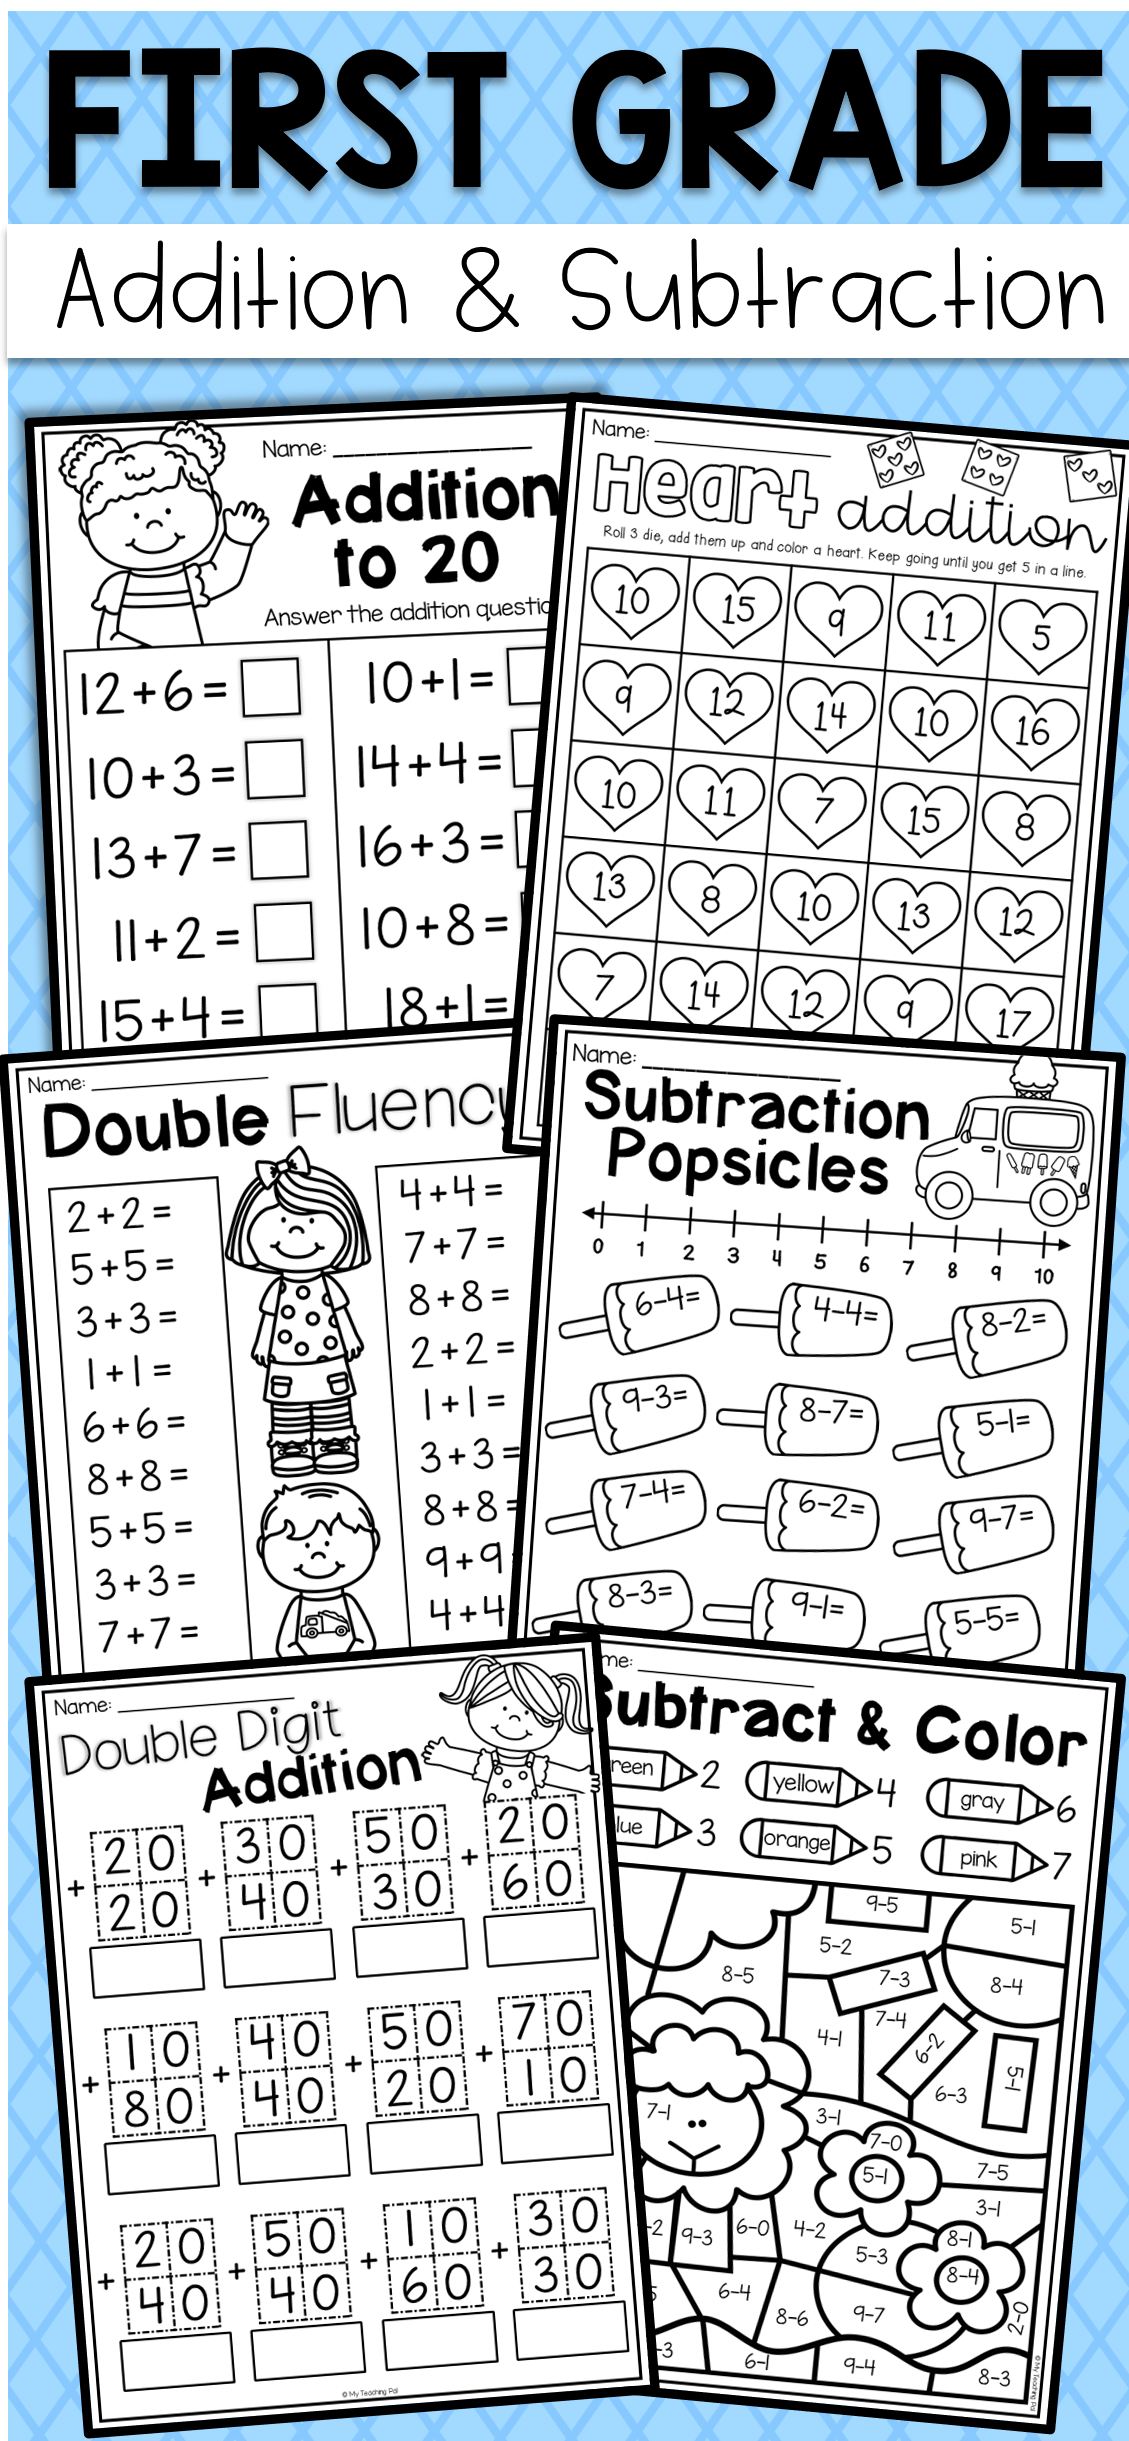 First Grade Addition And Subtraction Worksheets | First Grade